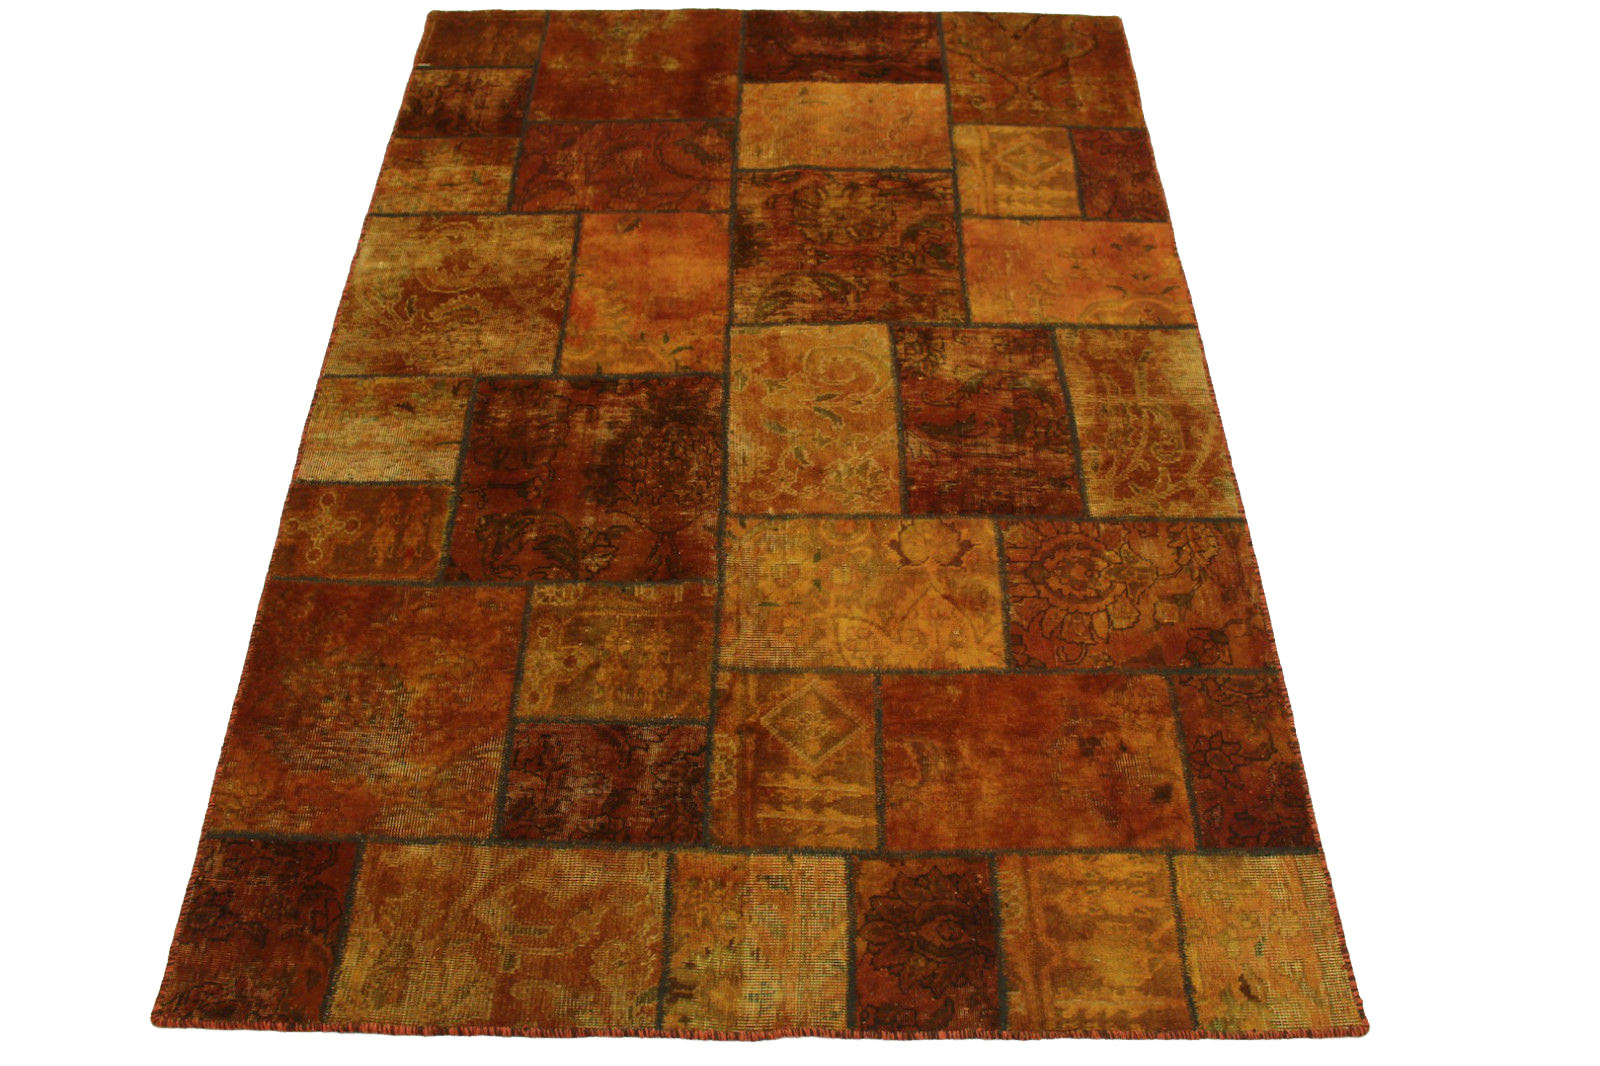 Patchwork Teppich Orange Braun In 240x170cm 1001 2092